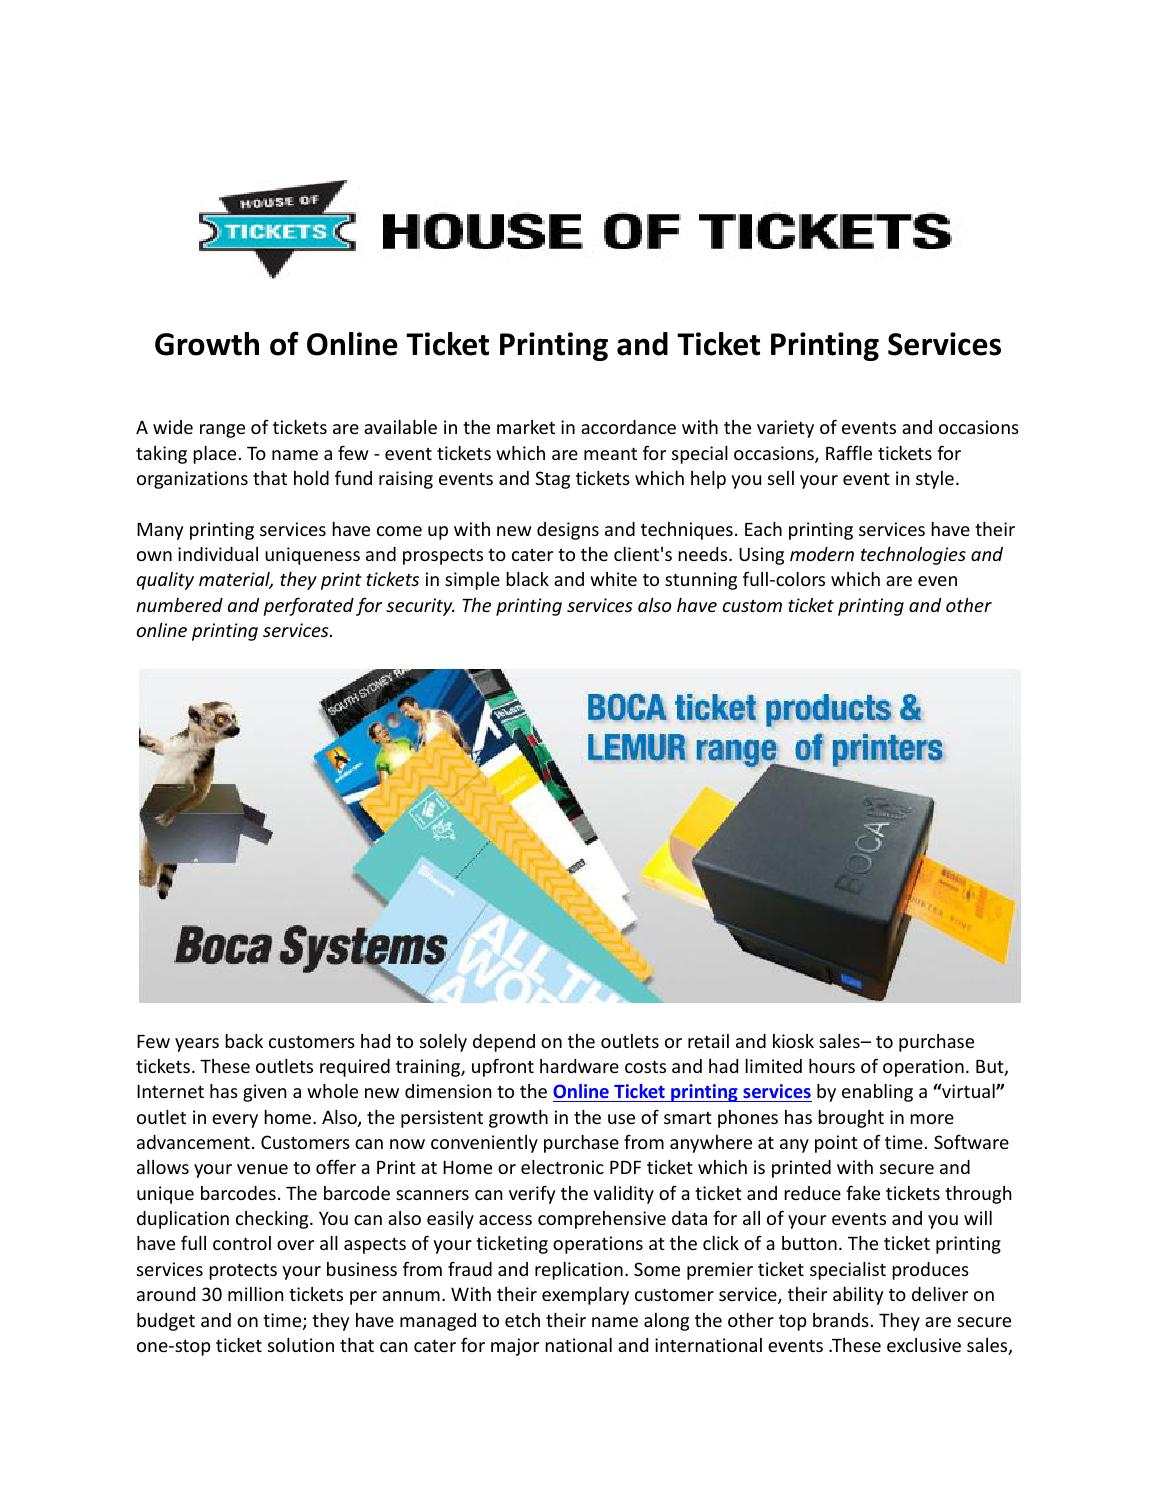 online ticket printing and ticket printing services by lenvodesouza